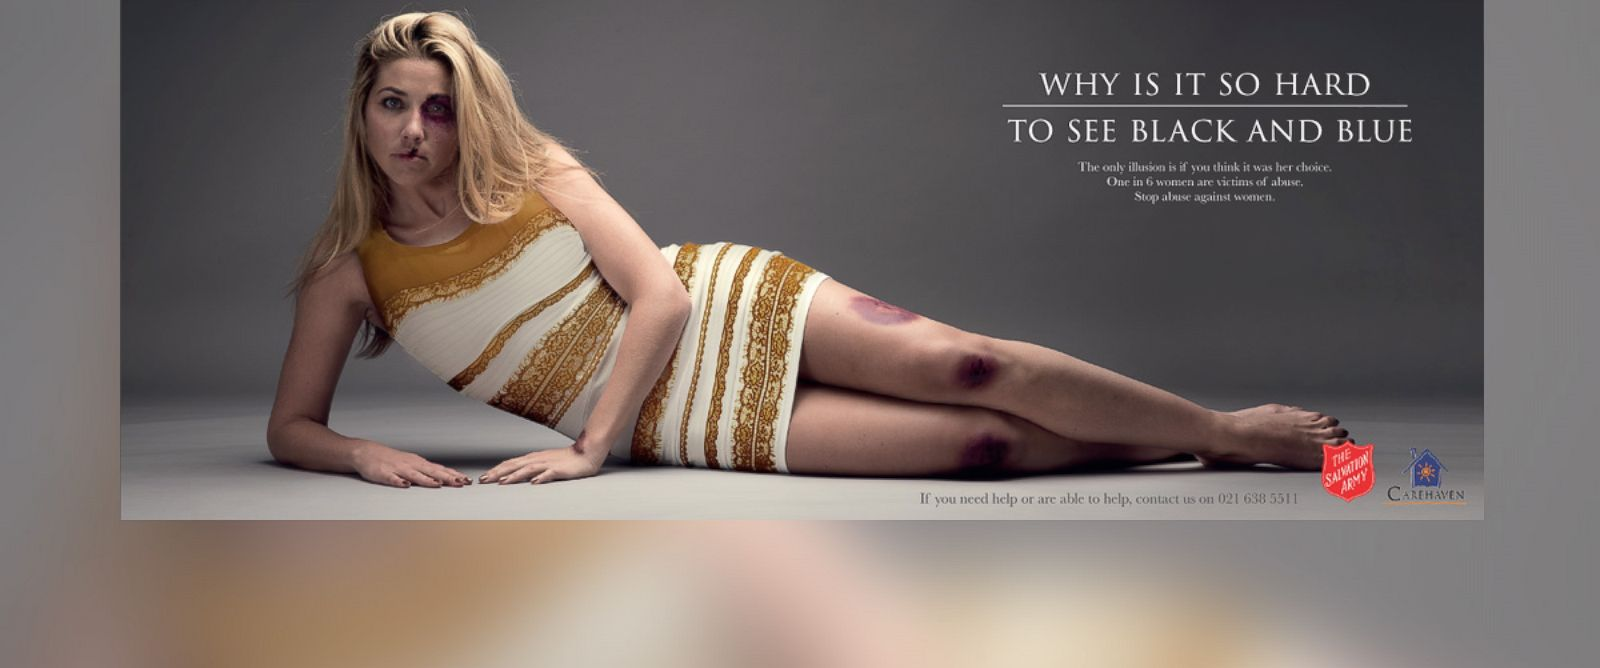 "PHOTO: The Salvation Army South Africa posted this image to their Twitter on March 6, 2015 with the caption, ""Why is it so hard to see black and blue? One in six women are victims of abuse. #StopAbuseAgainstWomen"""